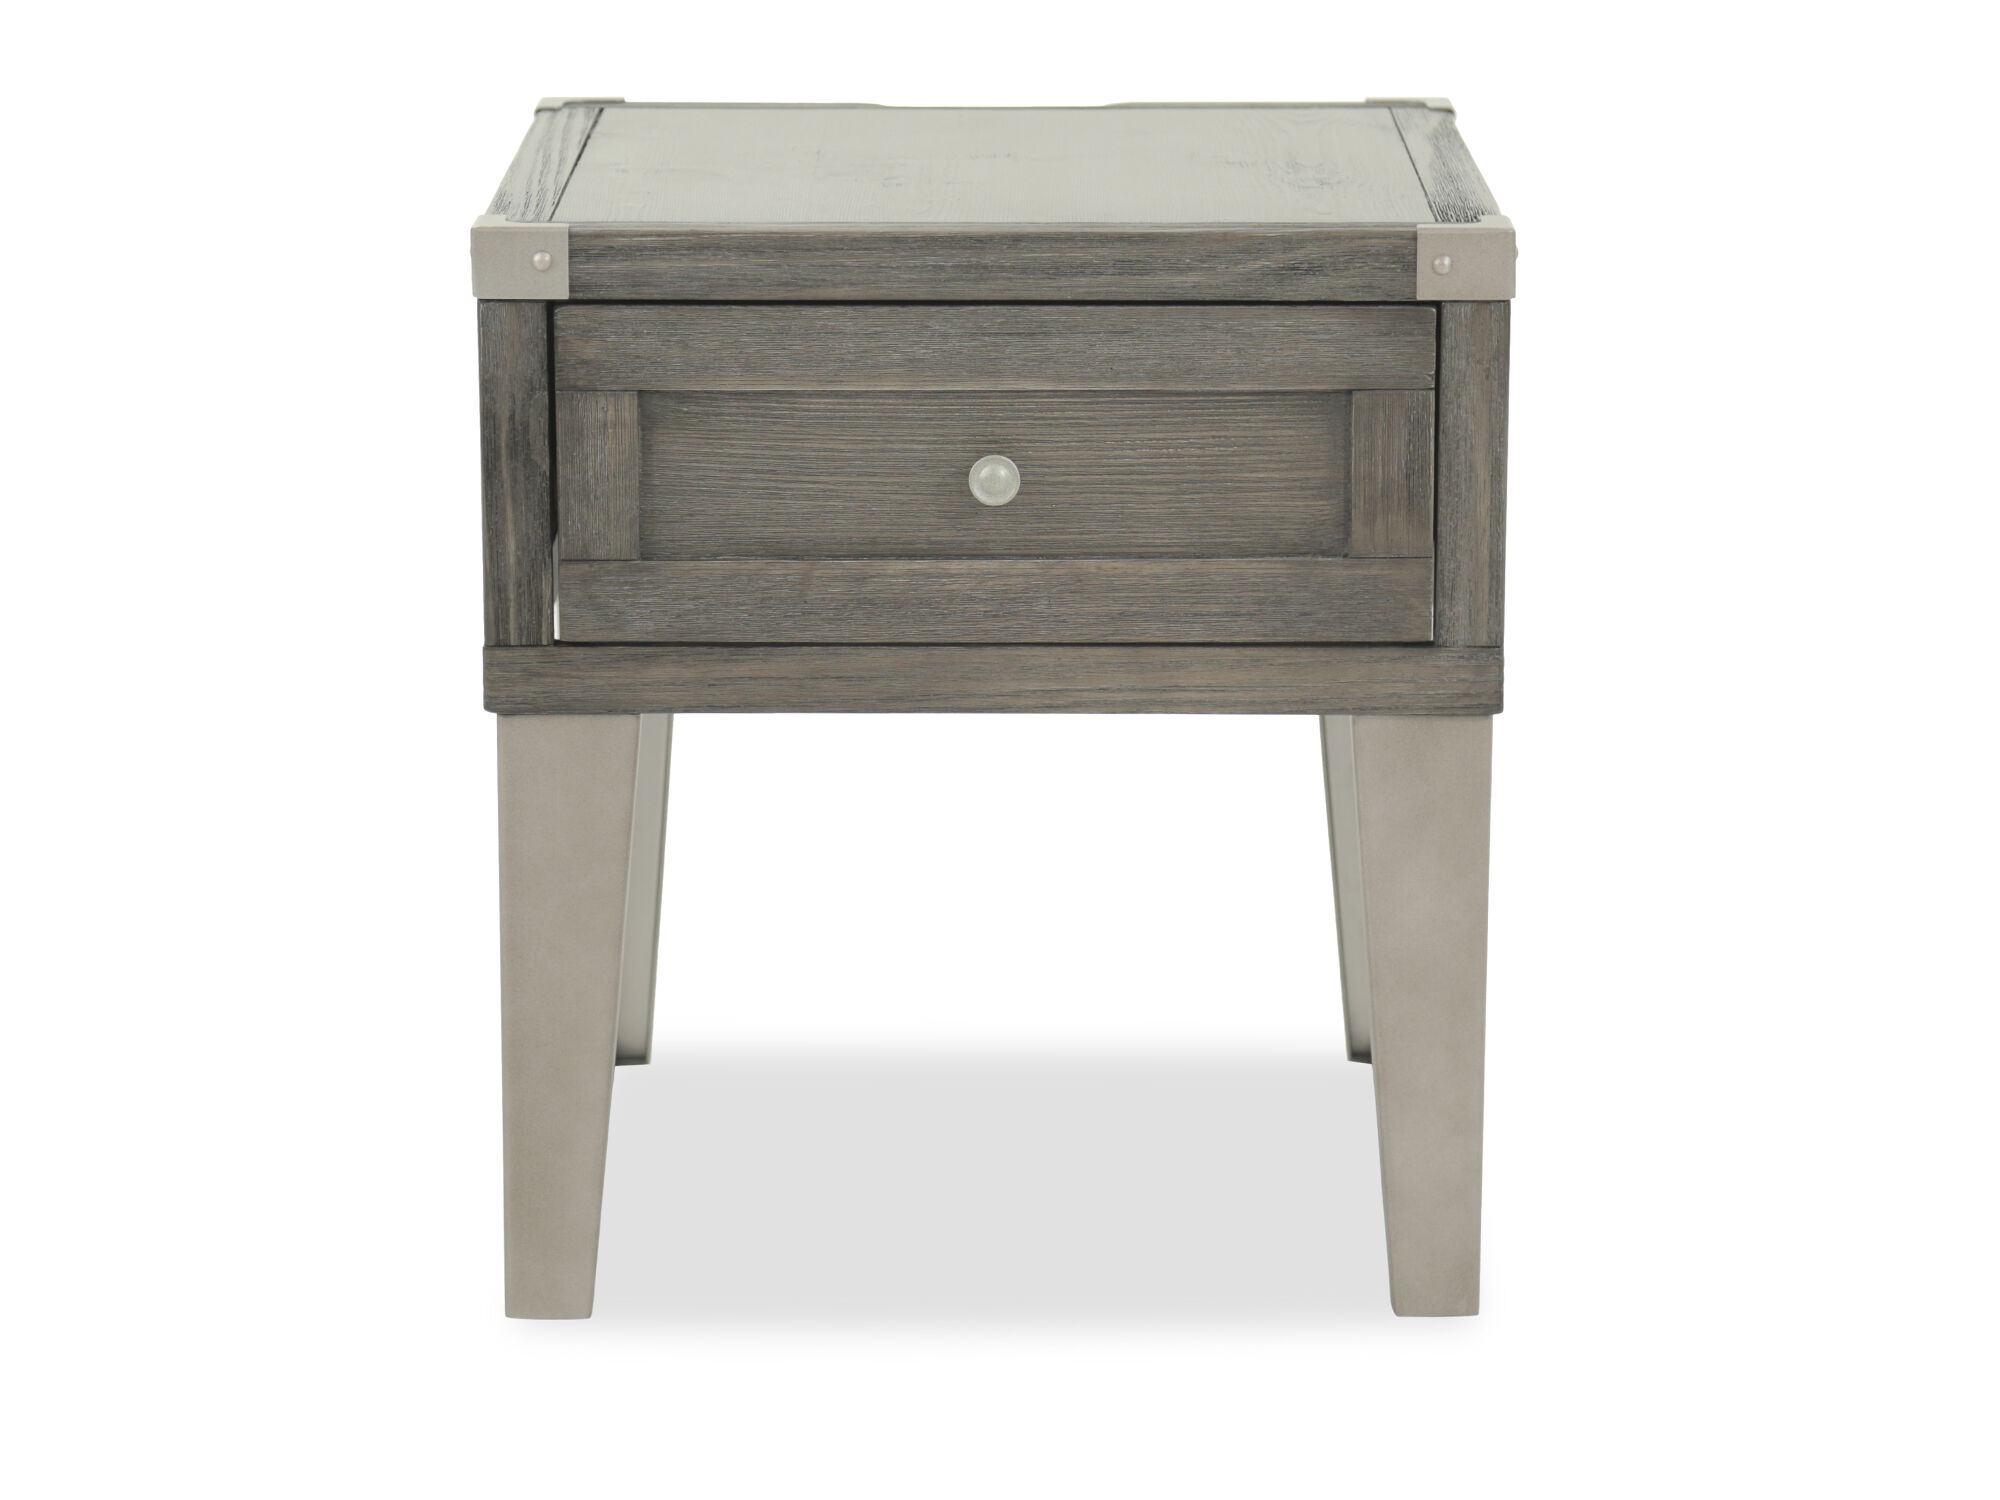 Images Contemporary Weathered End Table With USB Port In Dark Gray